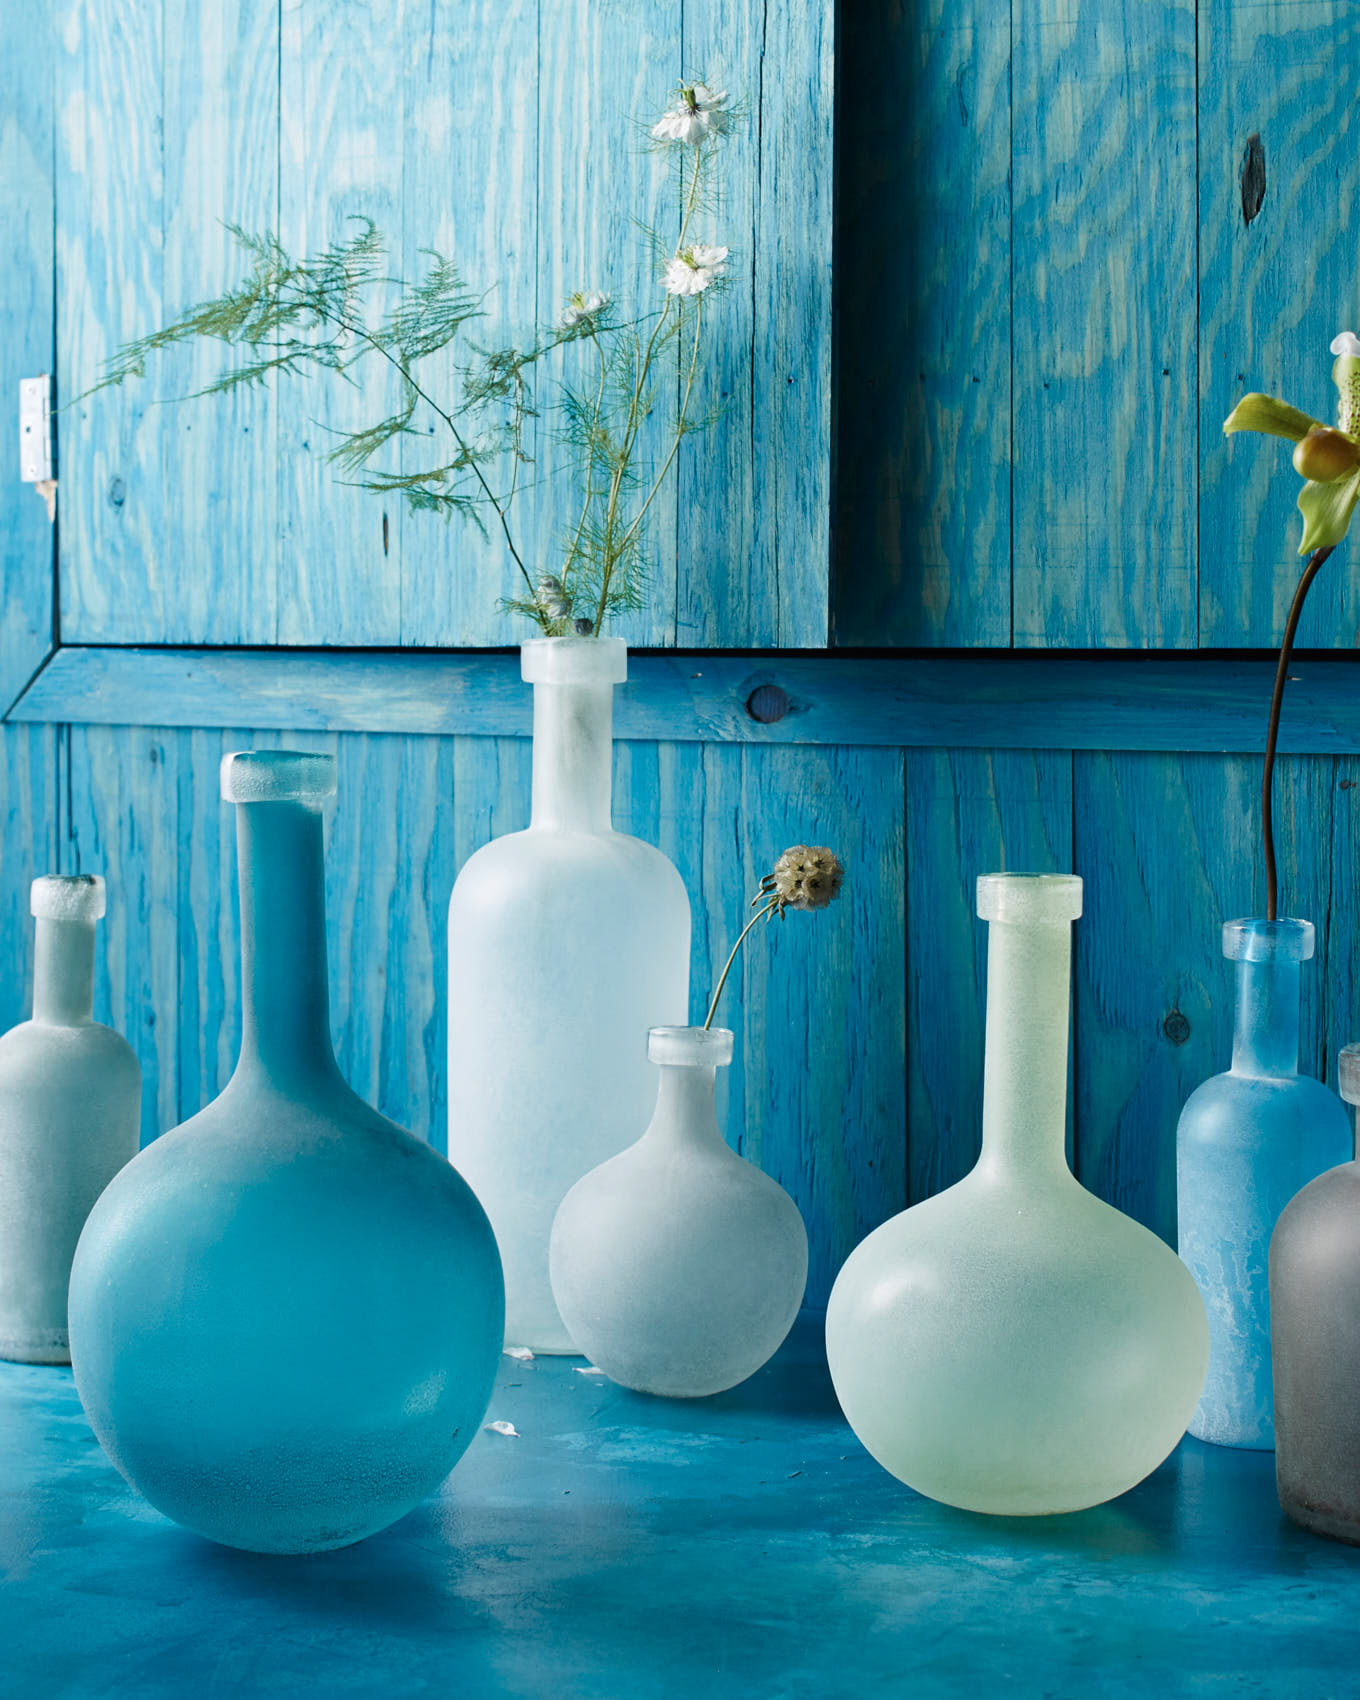 d2-waterscape-vases-sell-sum14-4225-w